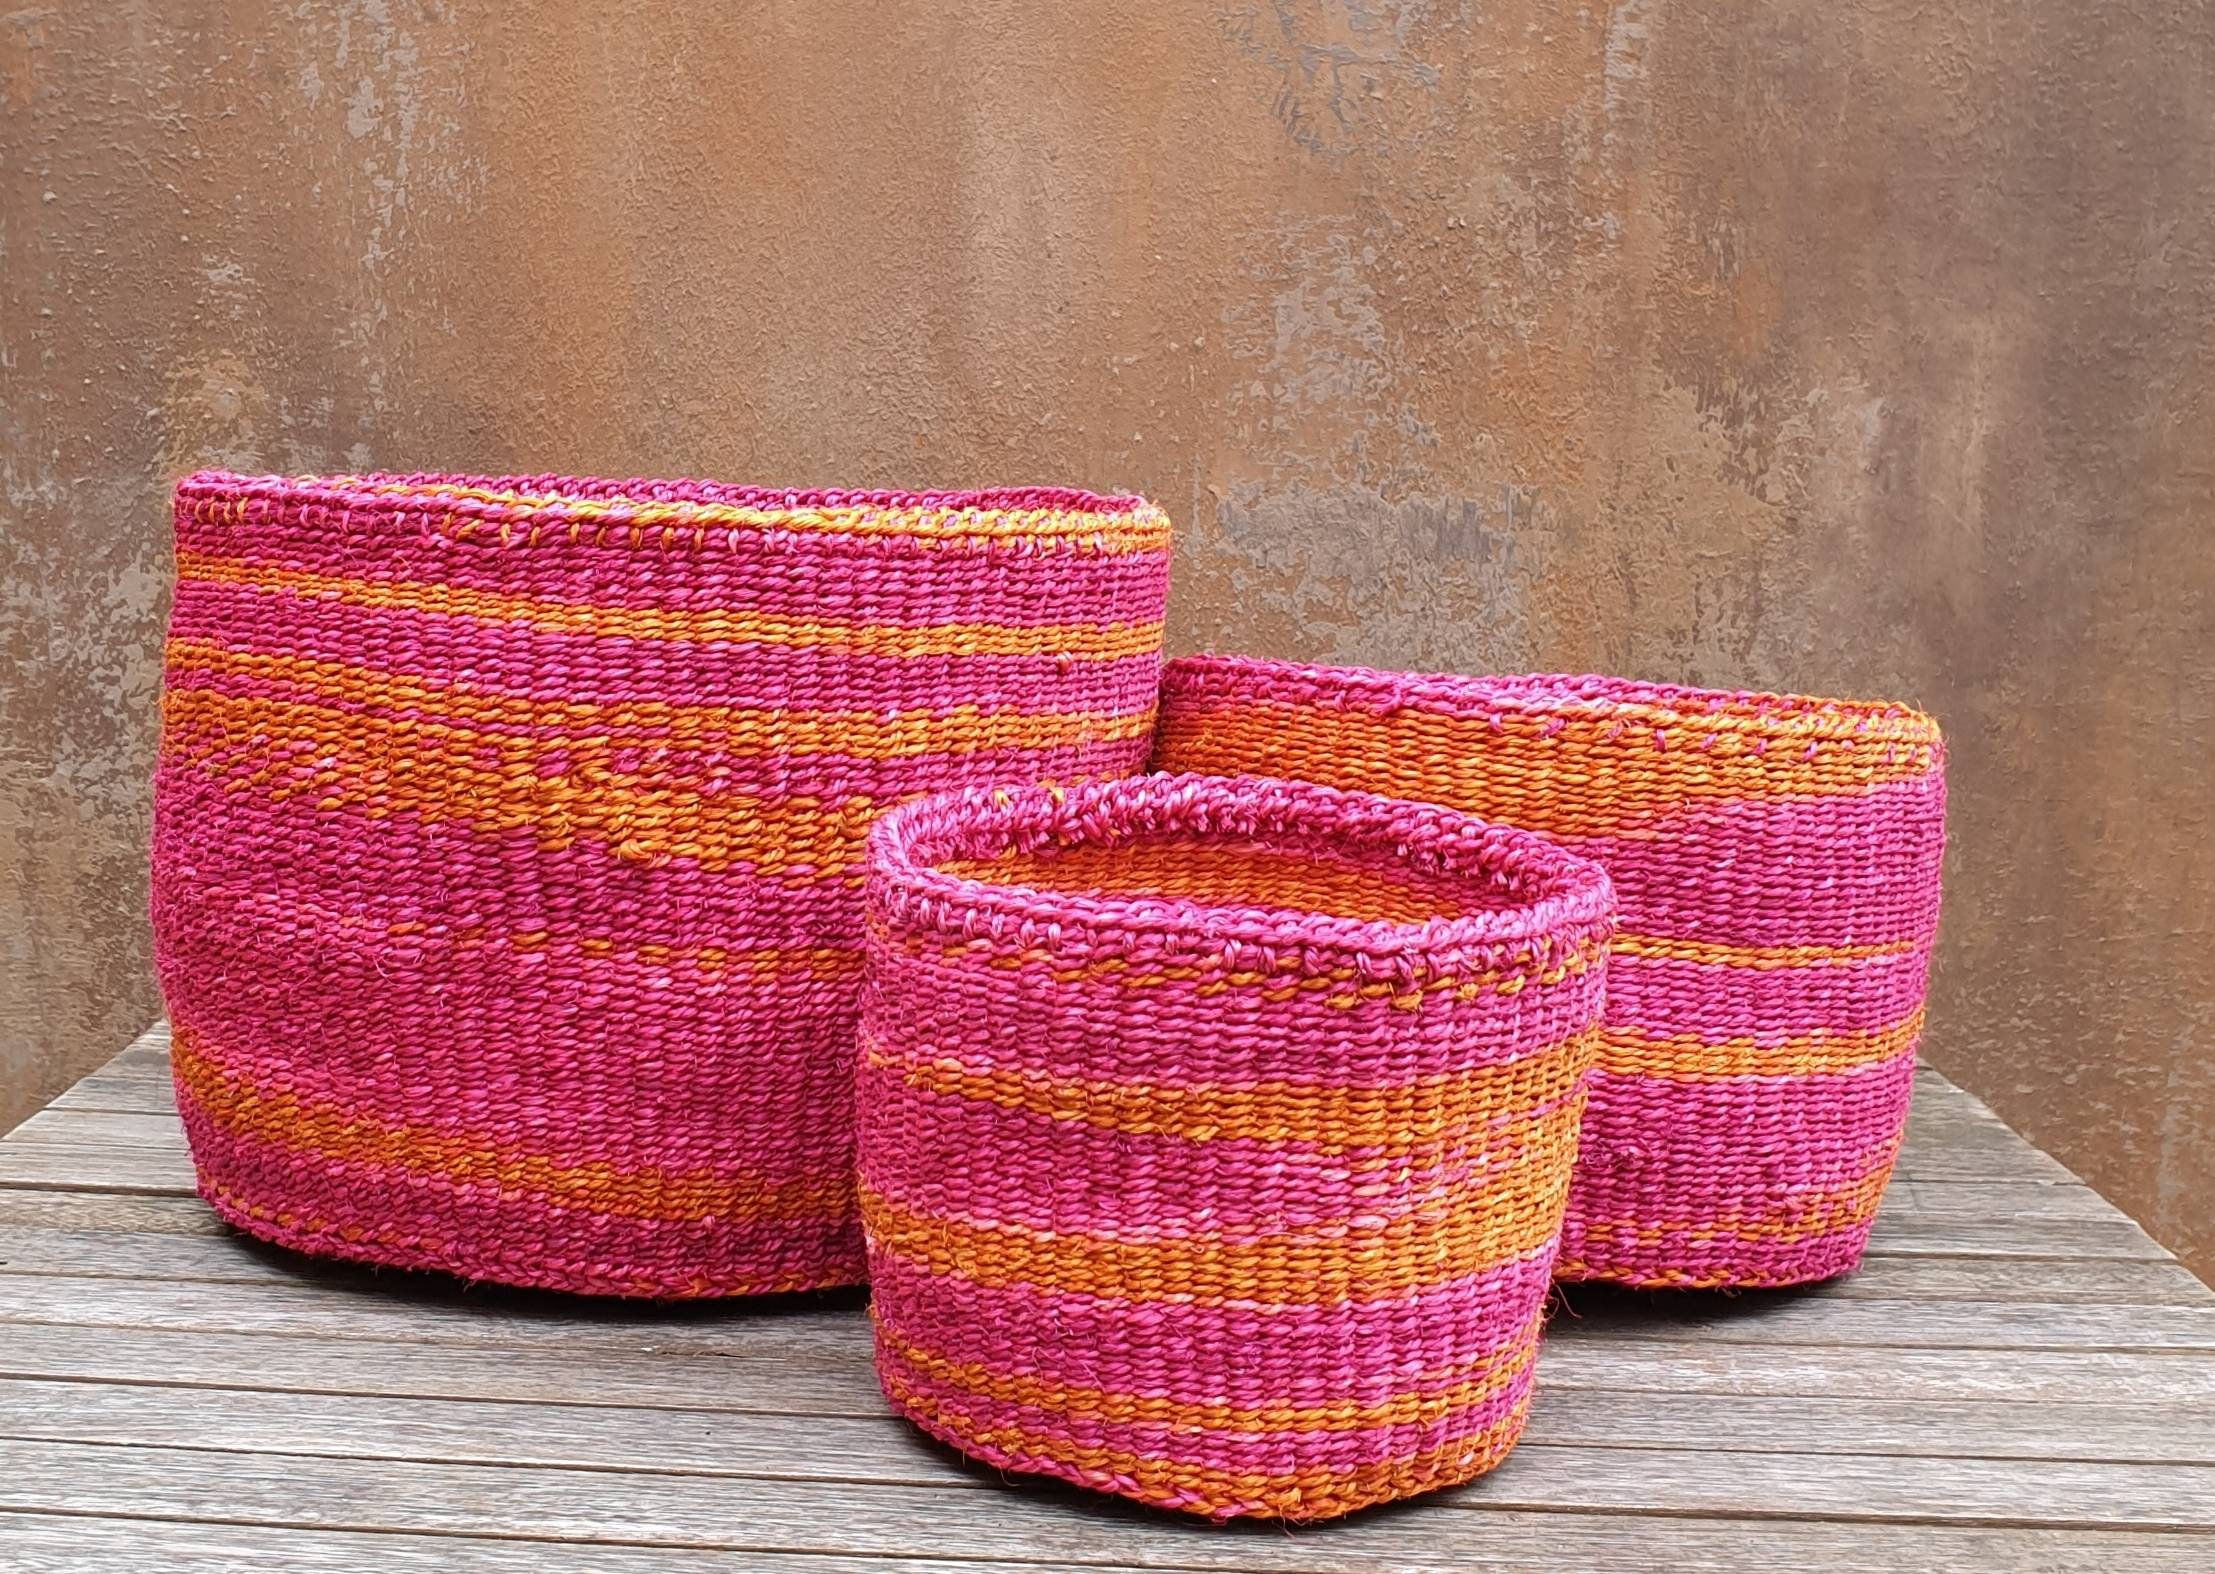 Pole Turquoise Sisal Baskets Etsy In 2020 Plant Pot Covers Sisal Pink Basket